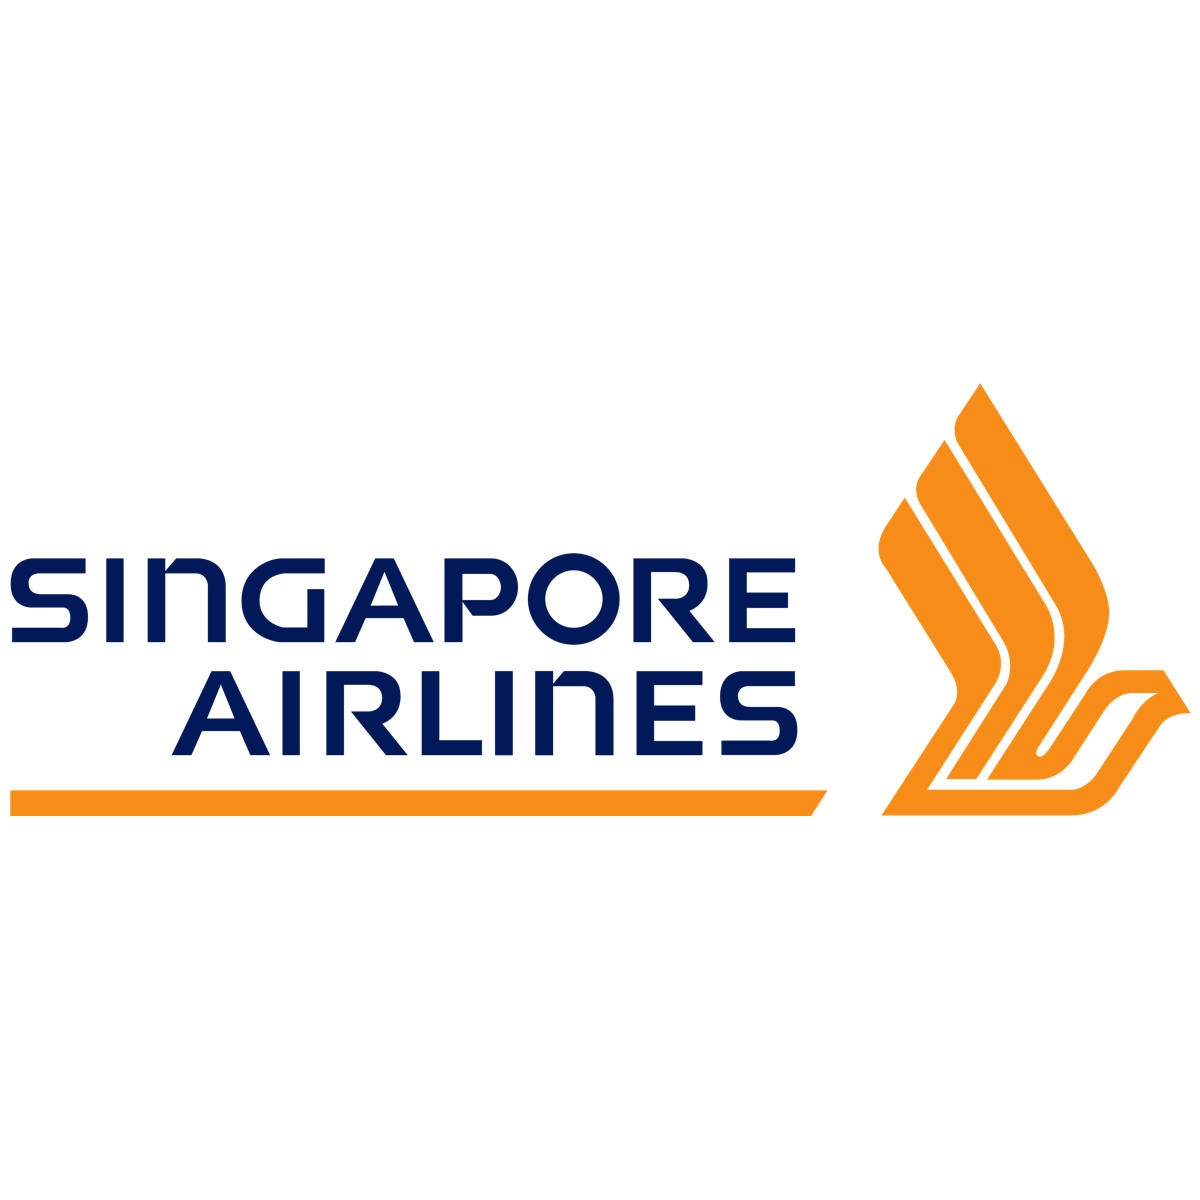 Singapore Airlines (SIA) - Maybank Kim Eng Research 2018-07-20: Yield Recovery At Hand